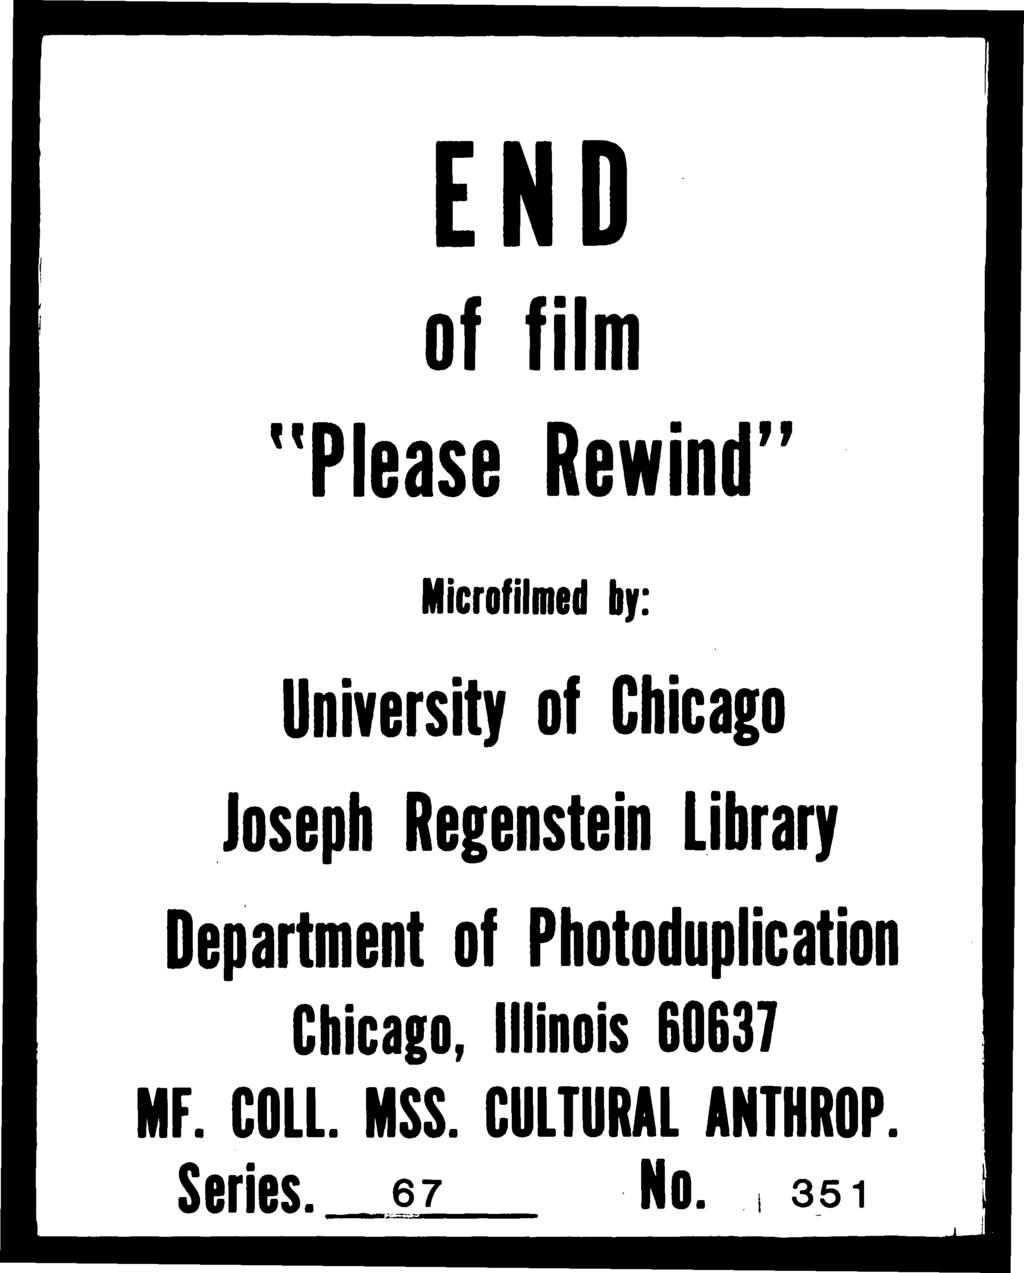 u END of film Please Rewind»» Microfilmed by: University of Chicago Joseph Regenstein Library